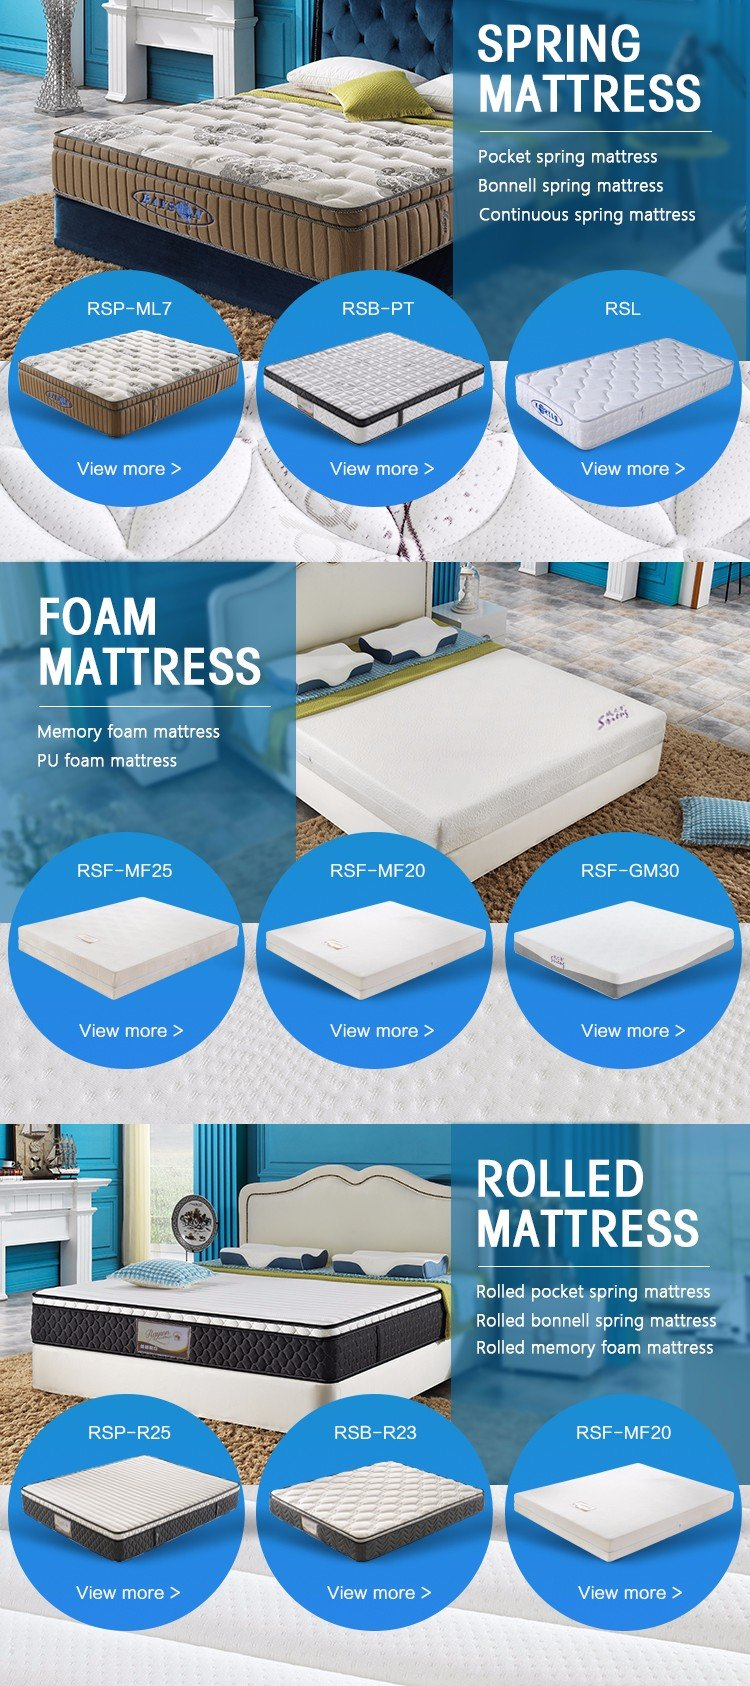 Rayson Mattress Top mattress world Suppliers-7